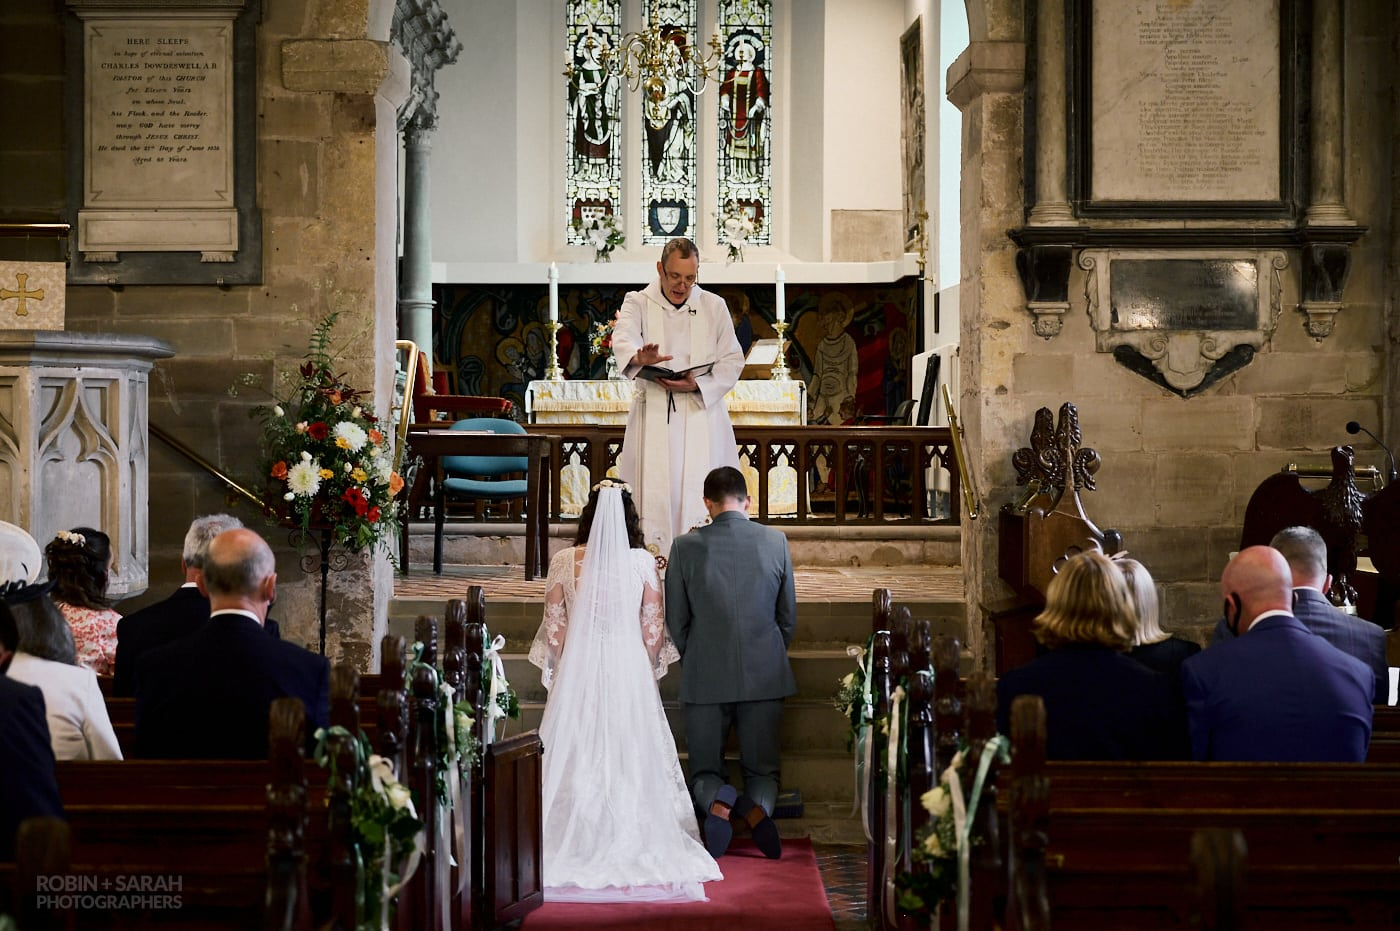 Bride and groom take blessing from vicar during church wedding service